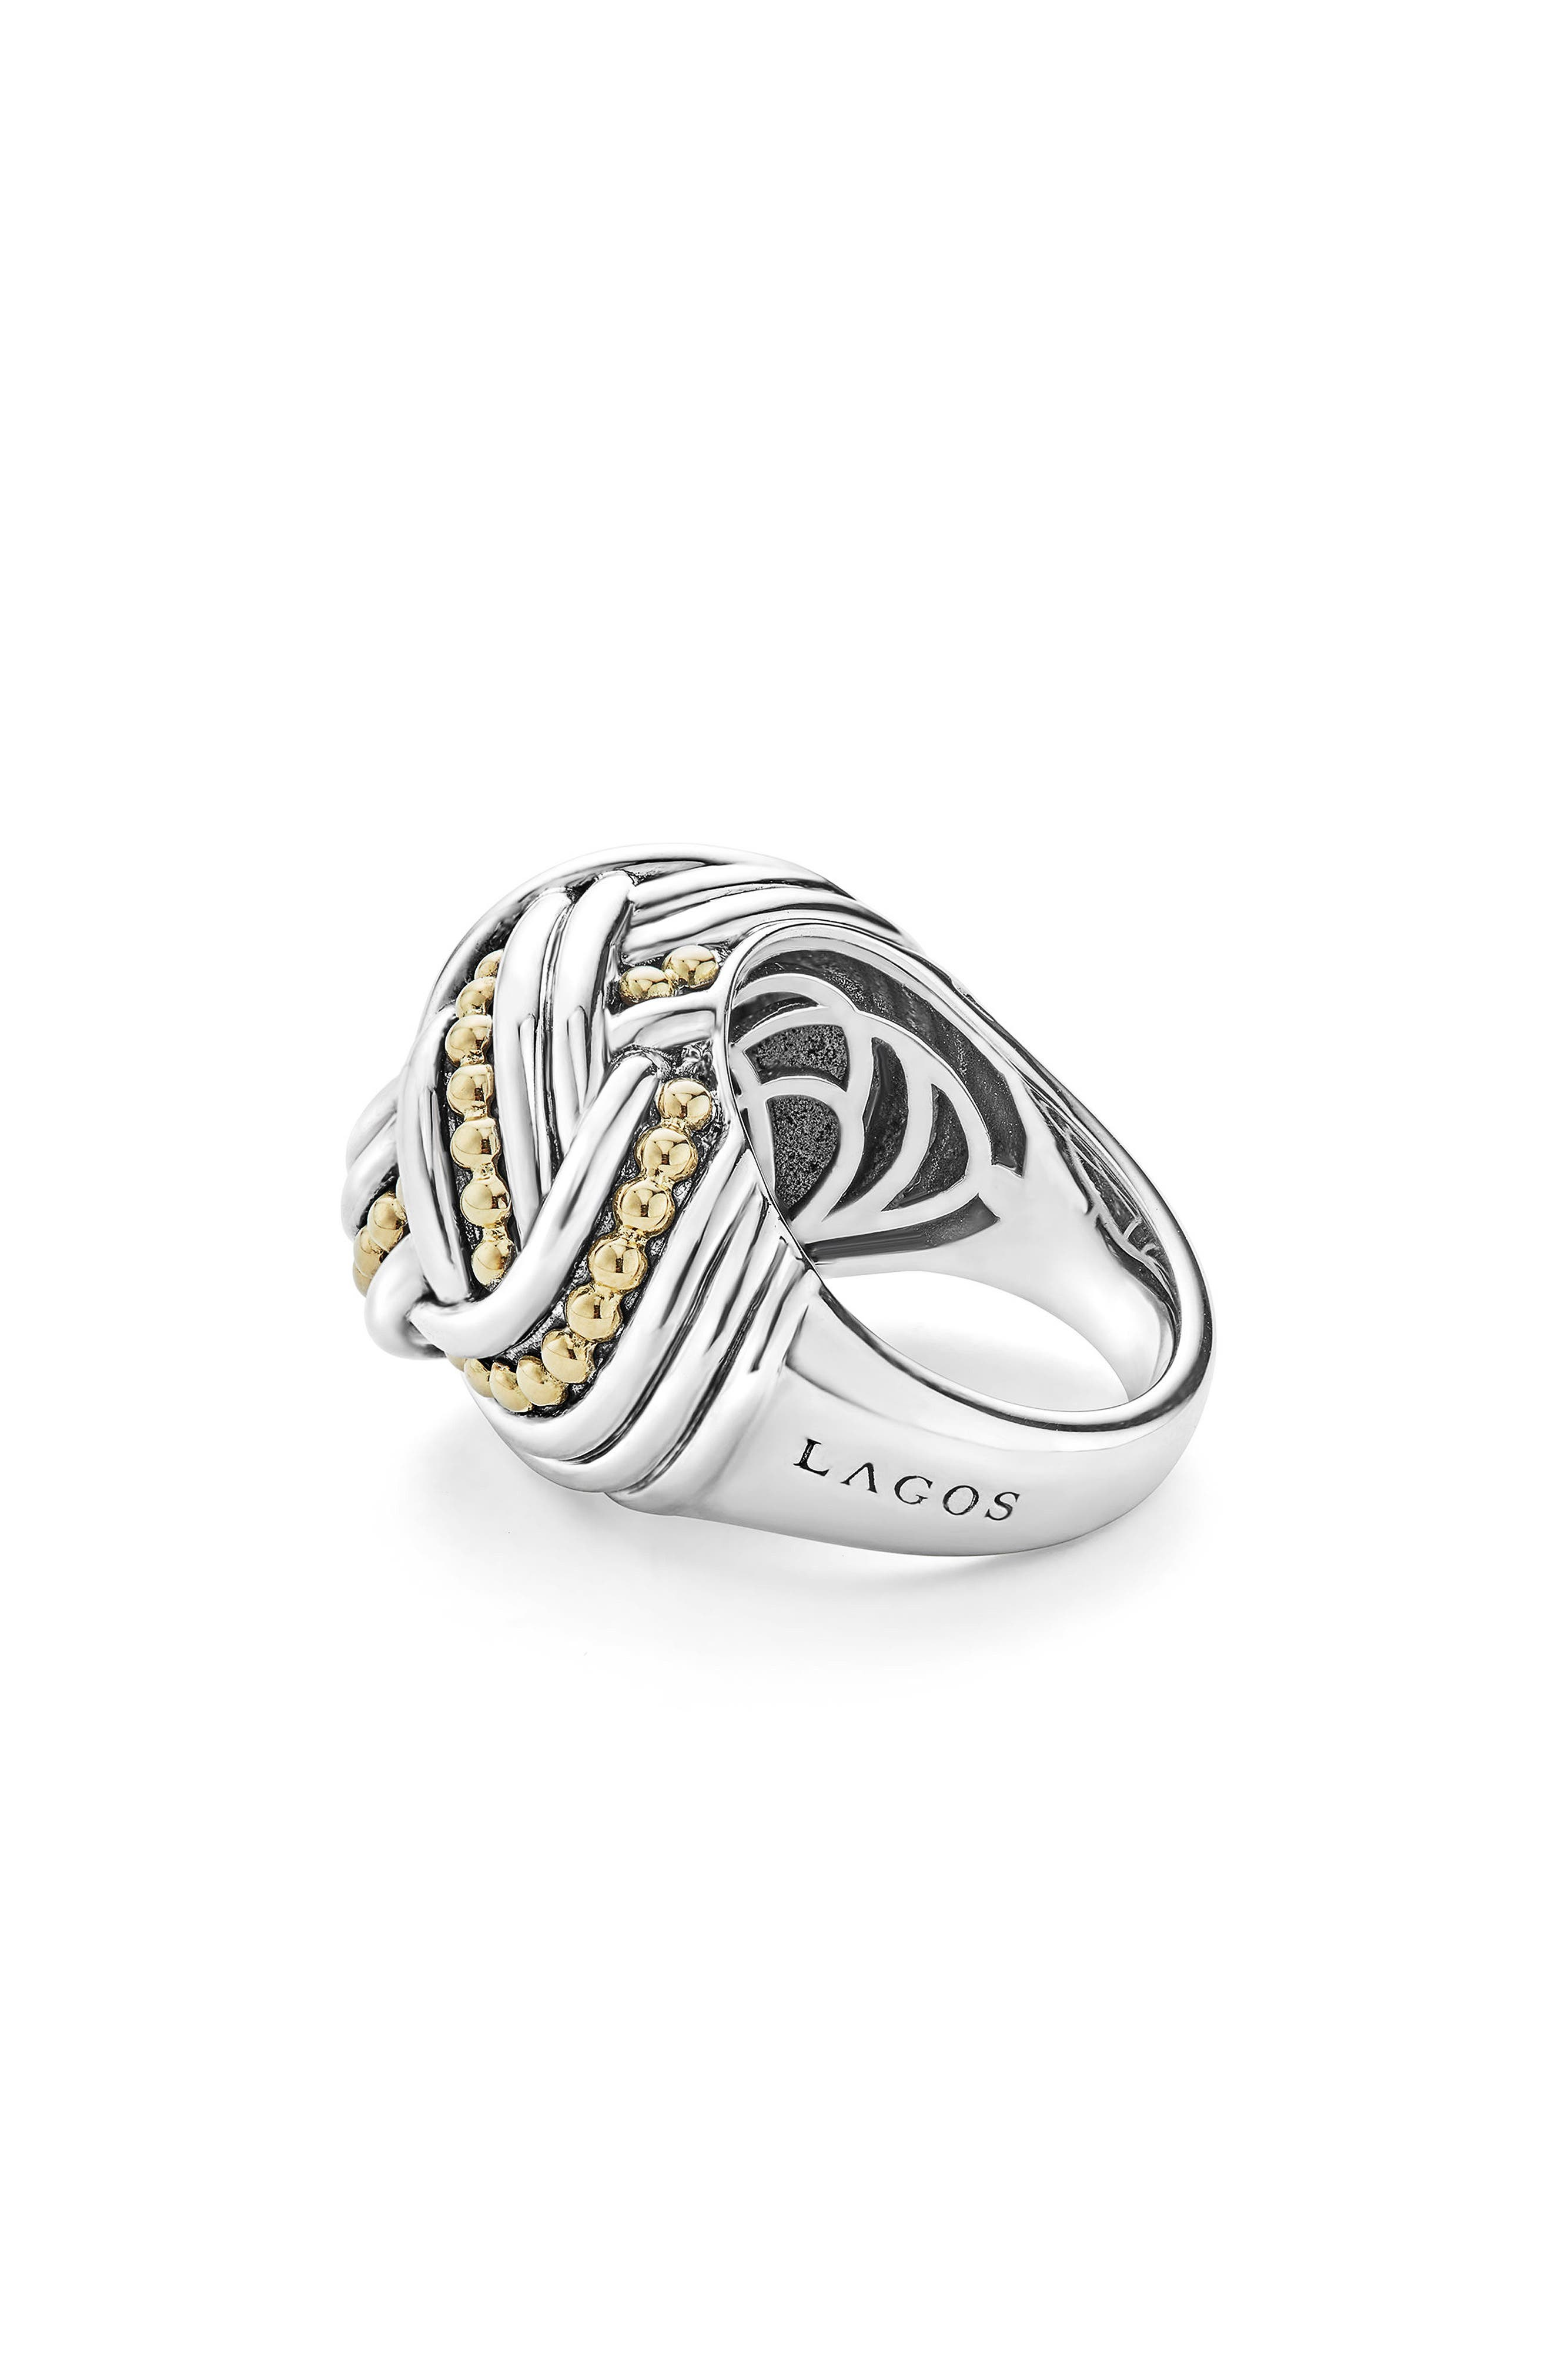 Torsade Large Rounded Rectangle Ring,                             Alternate thumbnail 6, color,                             SILVER/ GOLD